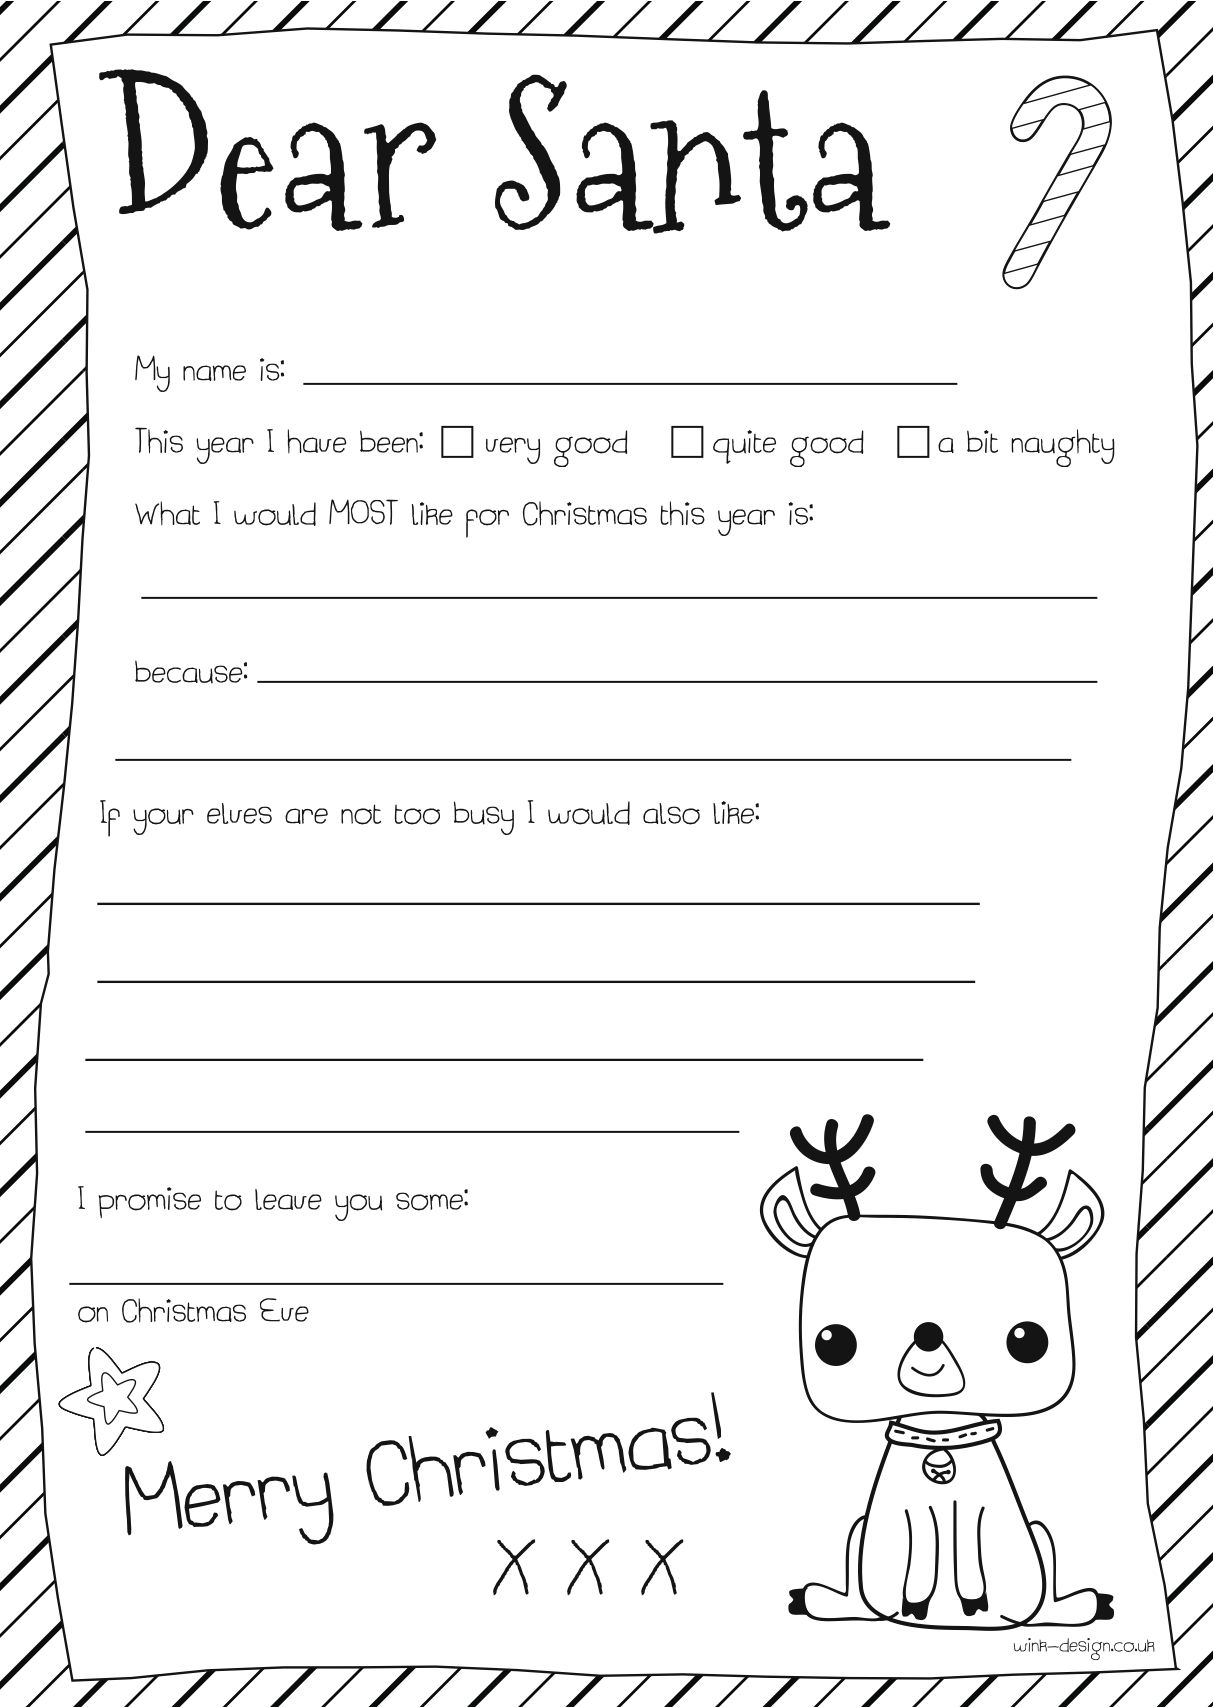 Dear Santa Letter  Christmas LetS Talk AboutTo Santa